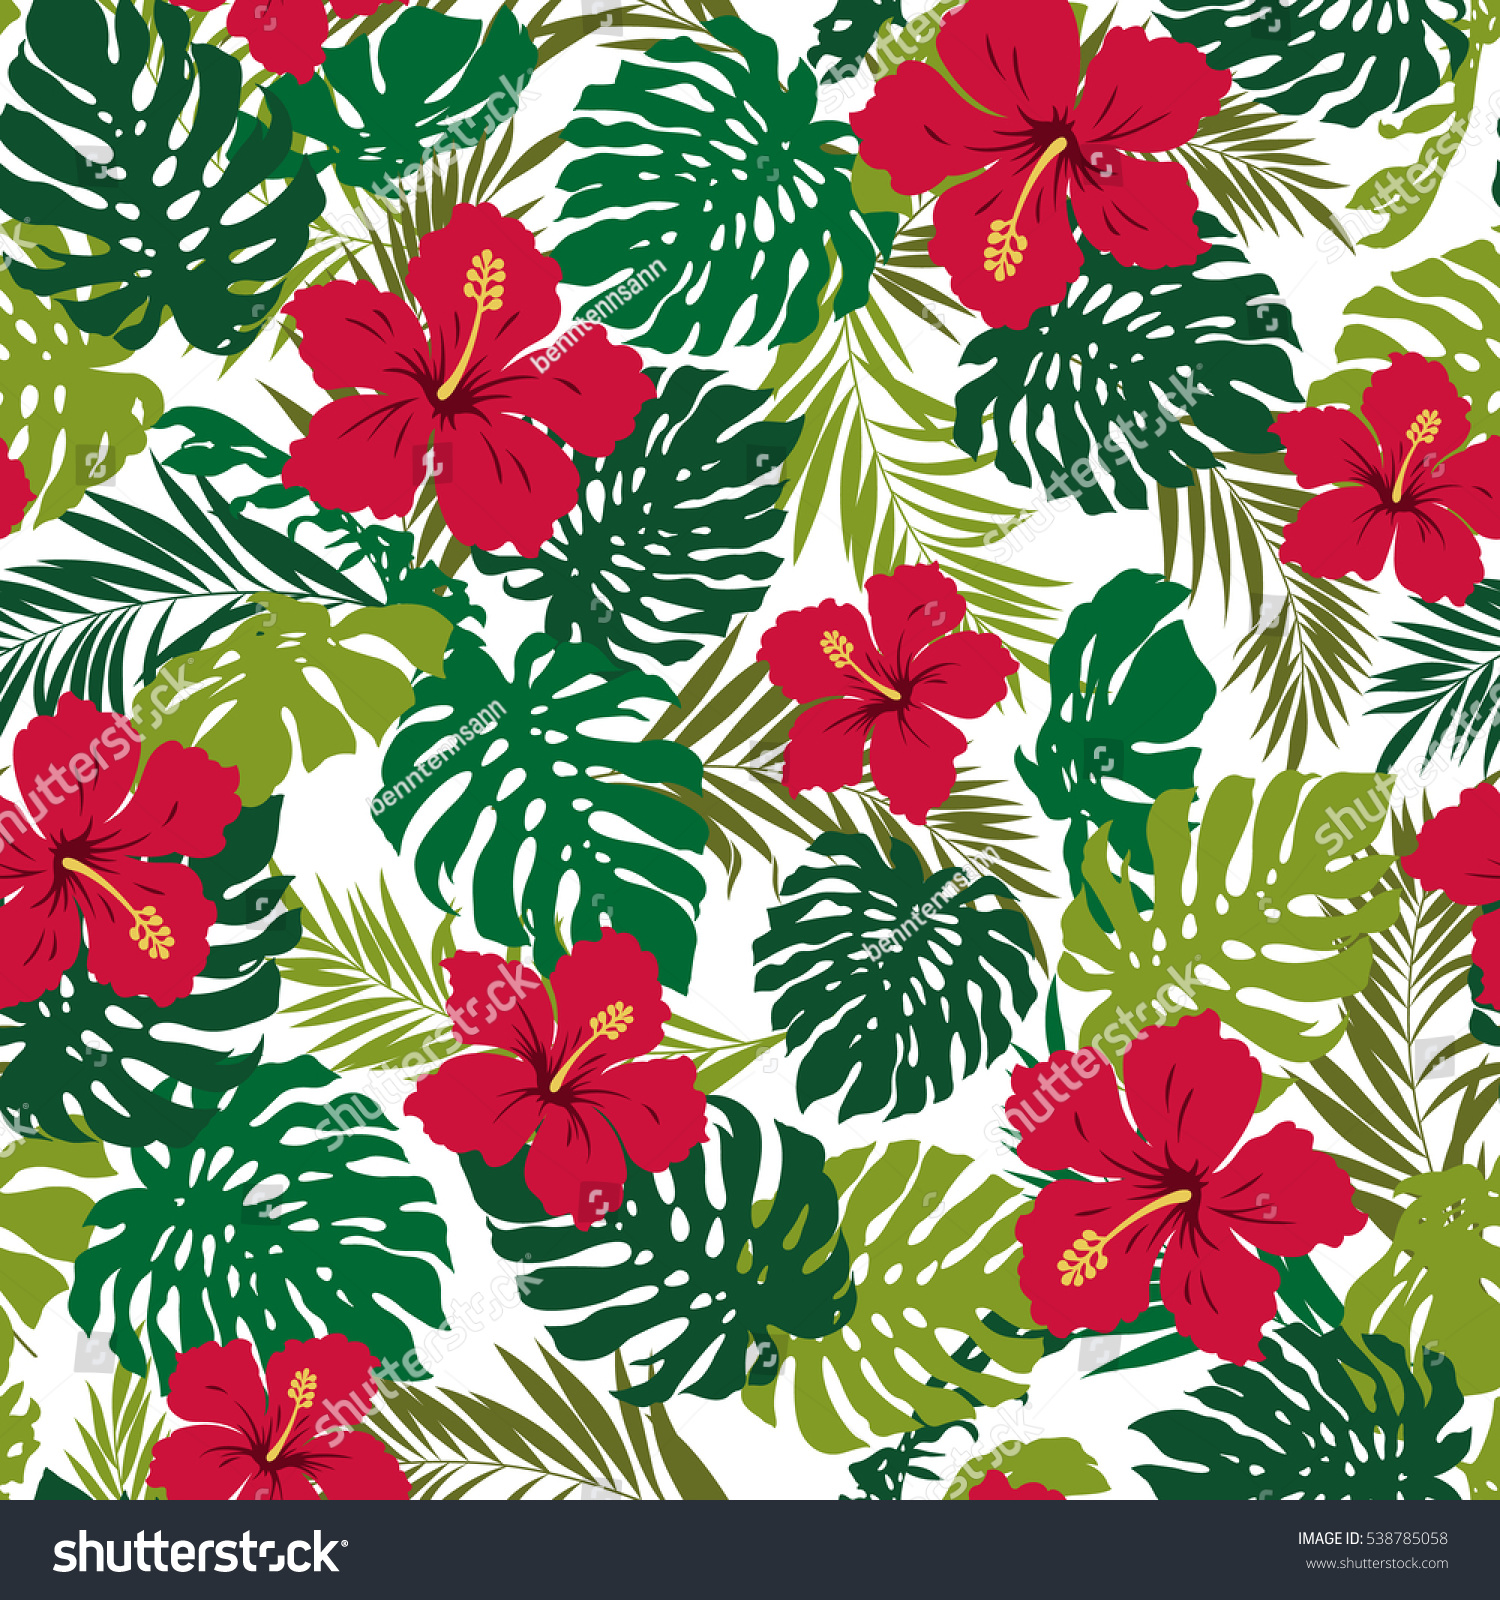 Hibiscus flower pattern stock photo photo vector illustration hibiscus flower pattern izmirmasajfo